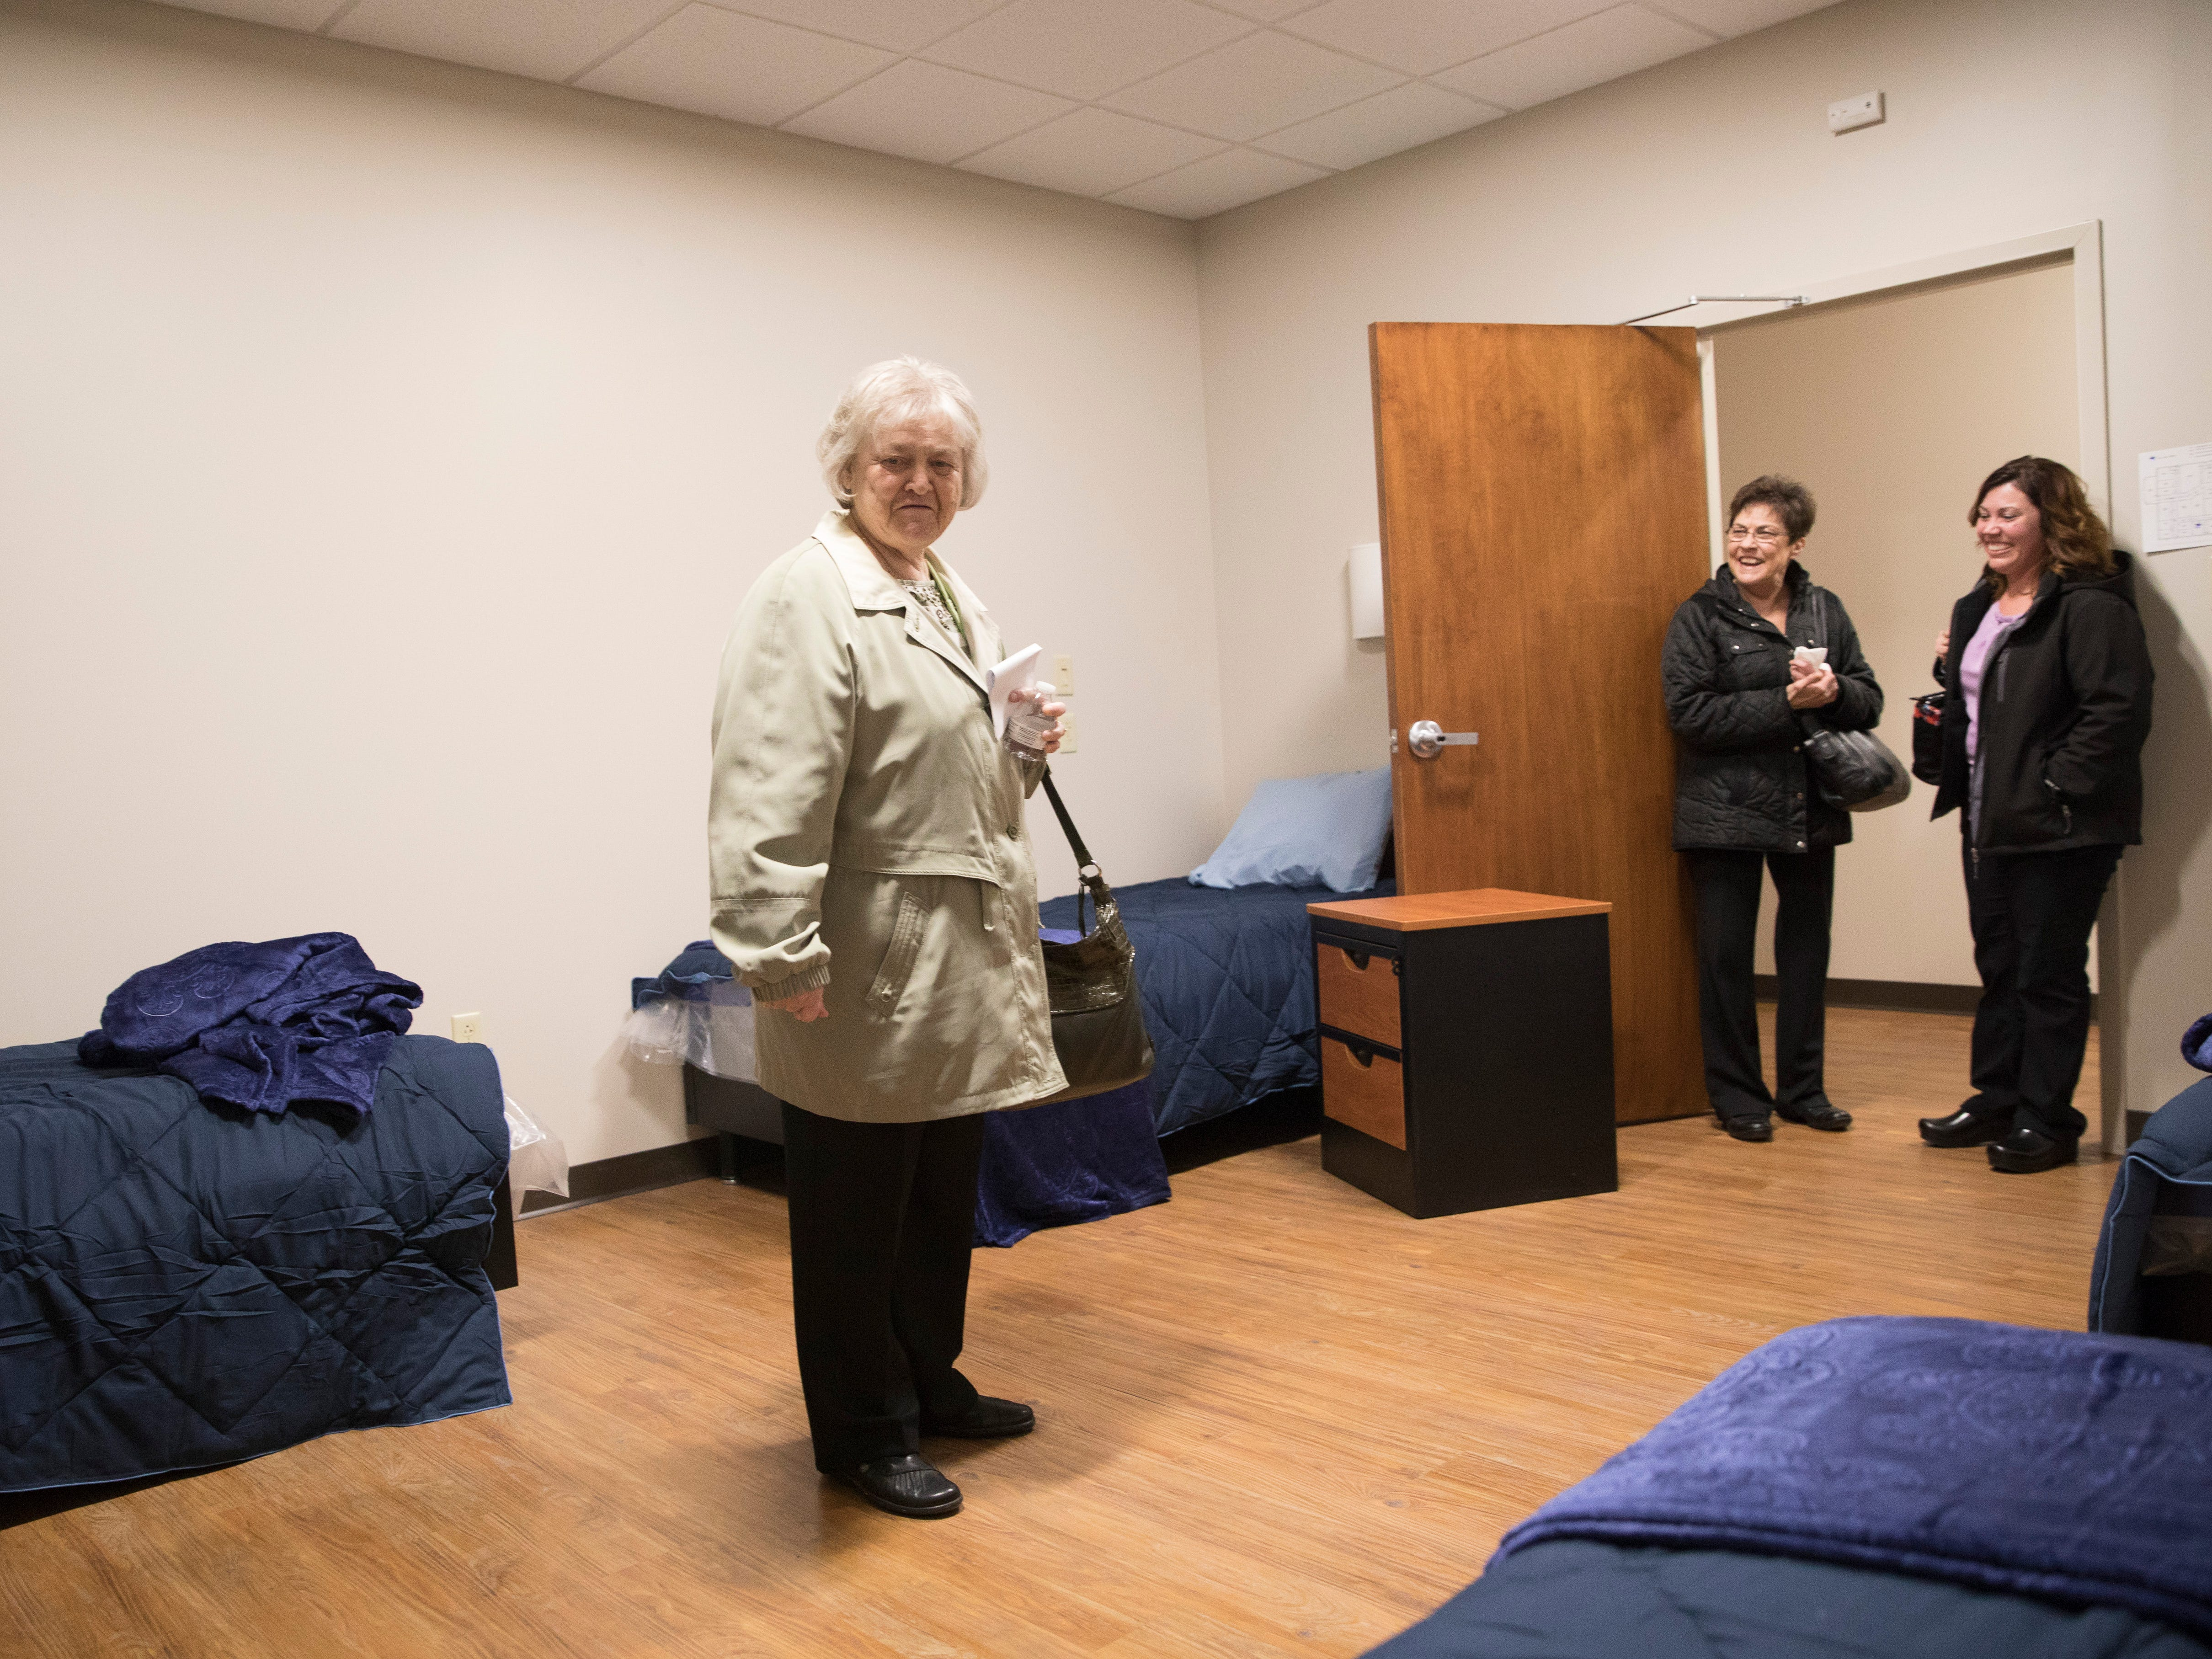 The Rulon Center, a treatment center for men with 36 beds, held its ribbon cutting and invited guests to tour the new facility on Feb. 5, 2019. The center, which officially opens on Wednesday, is named after Marsha Rulon, who volunteered for the mental health center's crisis line in the 1980s and is now on the board.